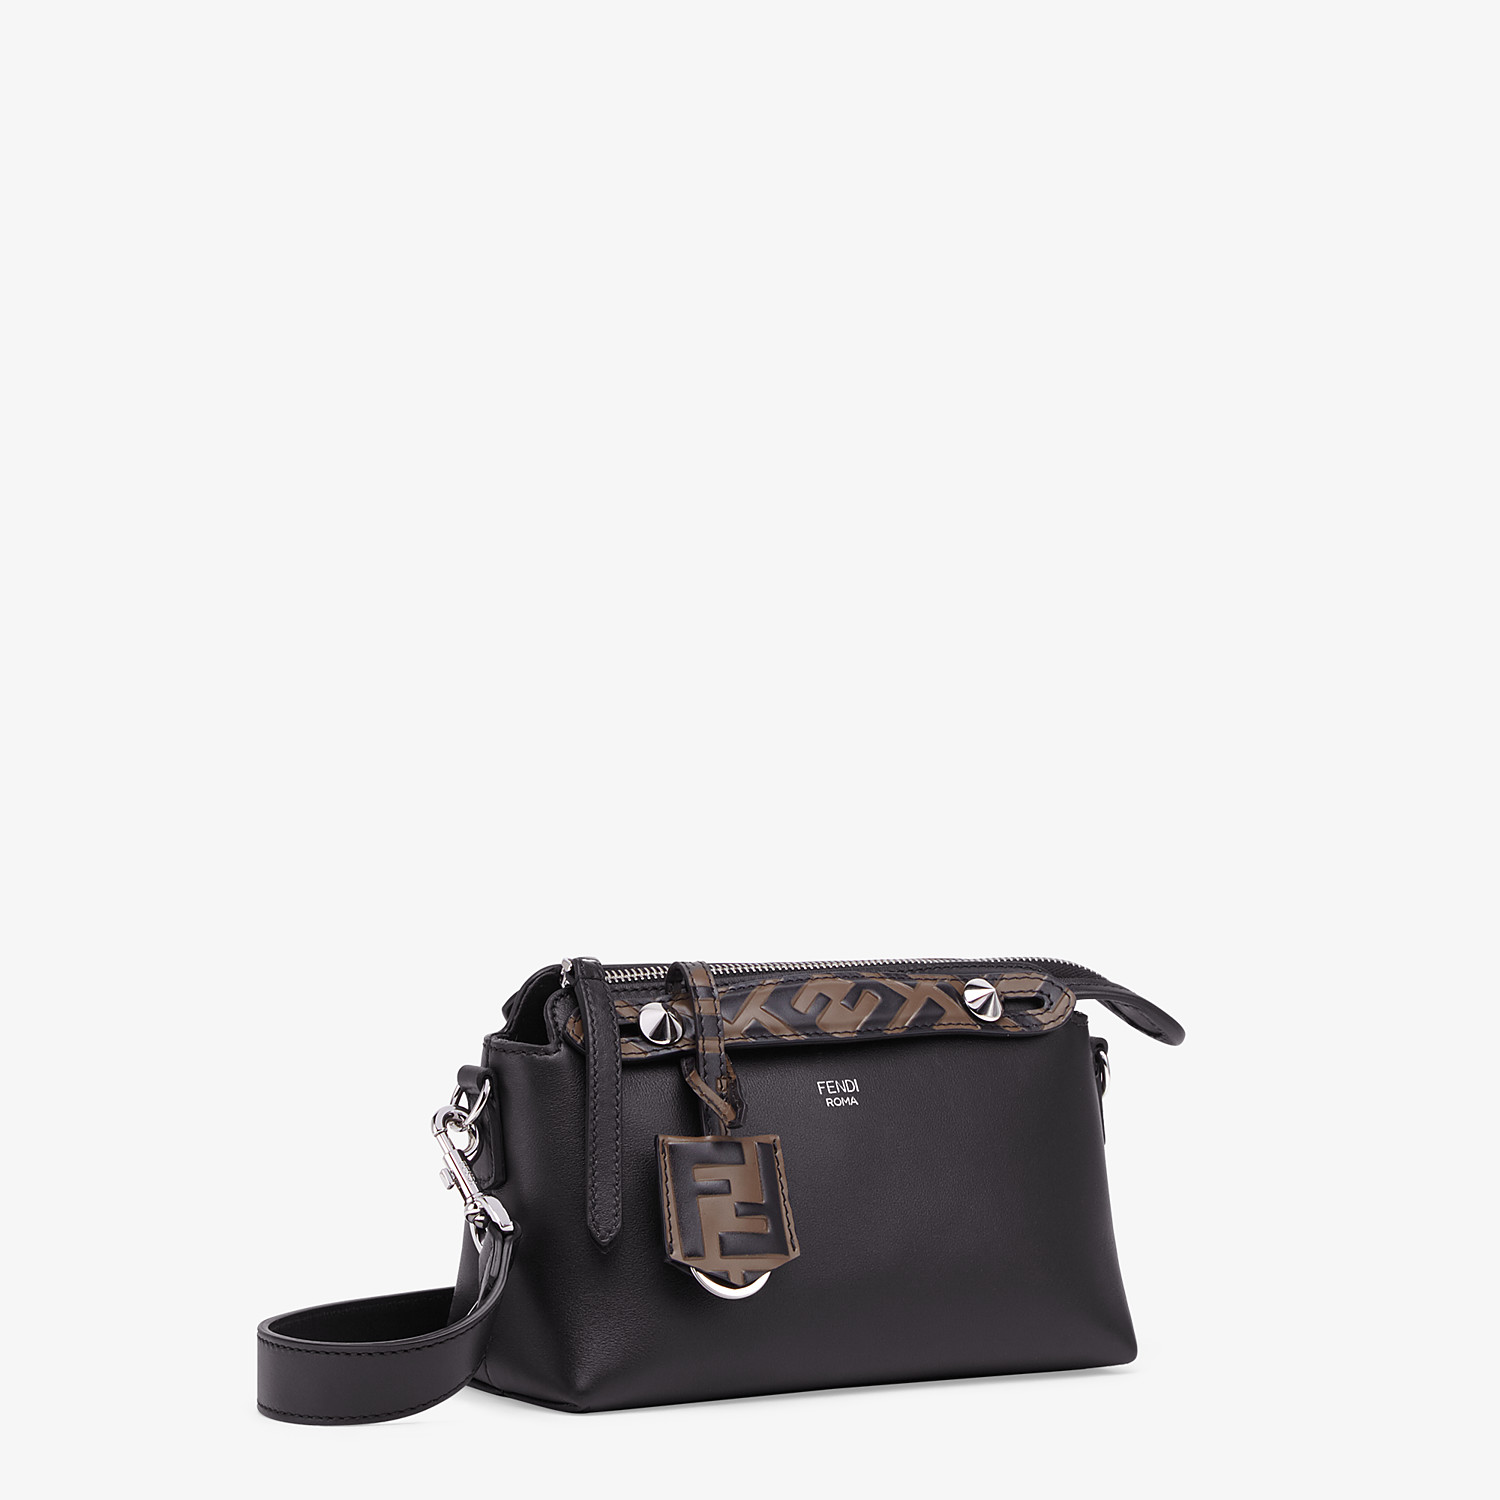 FENDI BY THE WAY MINI - Small black leather Boston bag - view 3 detail